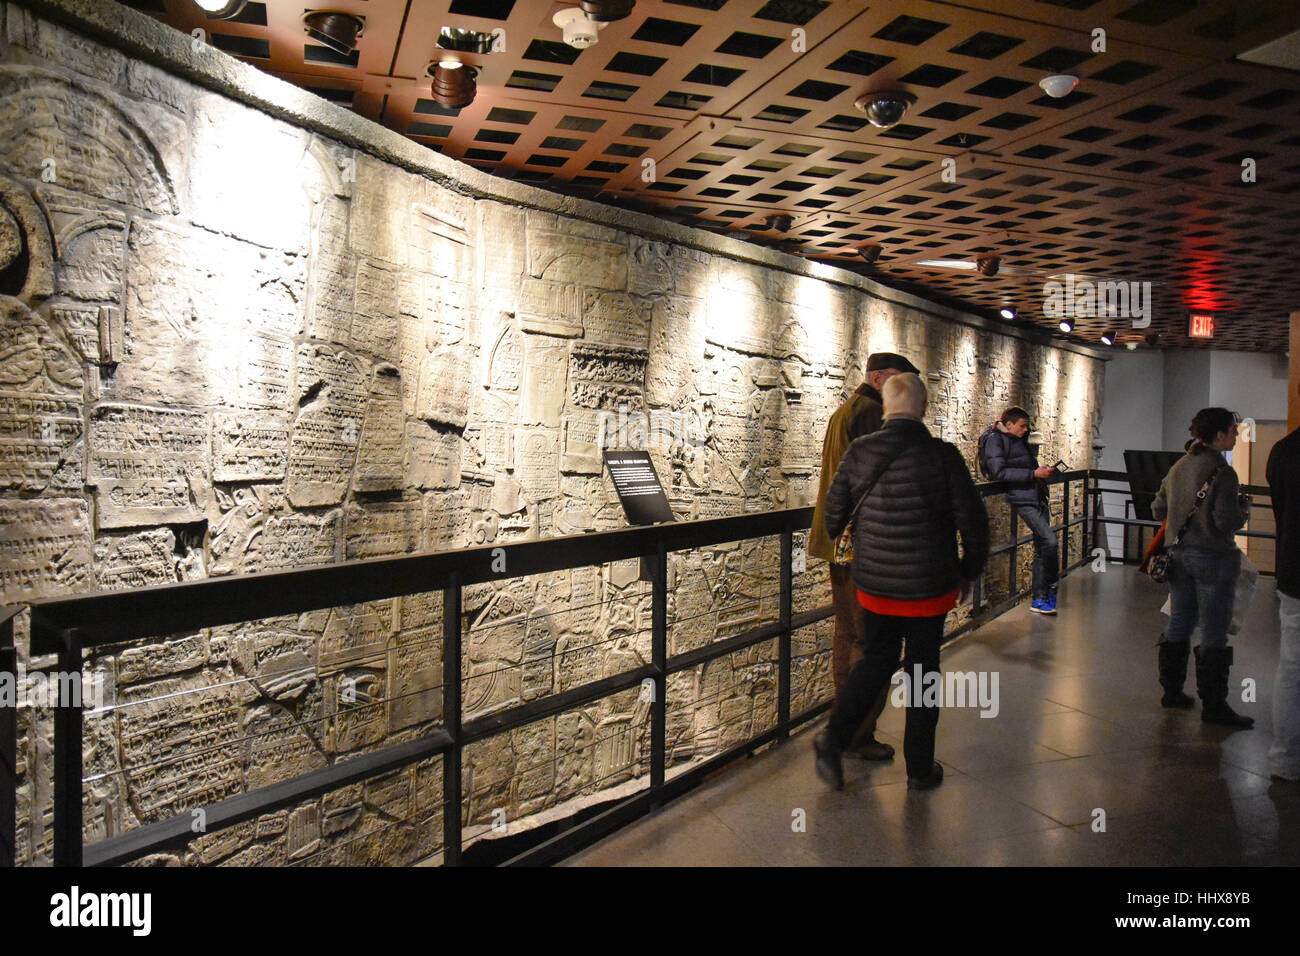 an introduction to the holocaust museum from washington dc Atlanta hawks owner bruce levenson's mother-in-law is a survivor and made  ( photo: united states holocaust memorial museum courtesy photo)  introduced  boyarsky, 85, and played a short clip of her talking in a video.